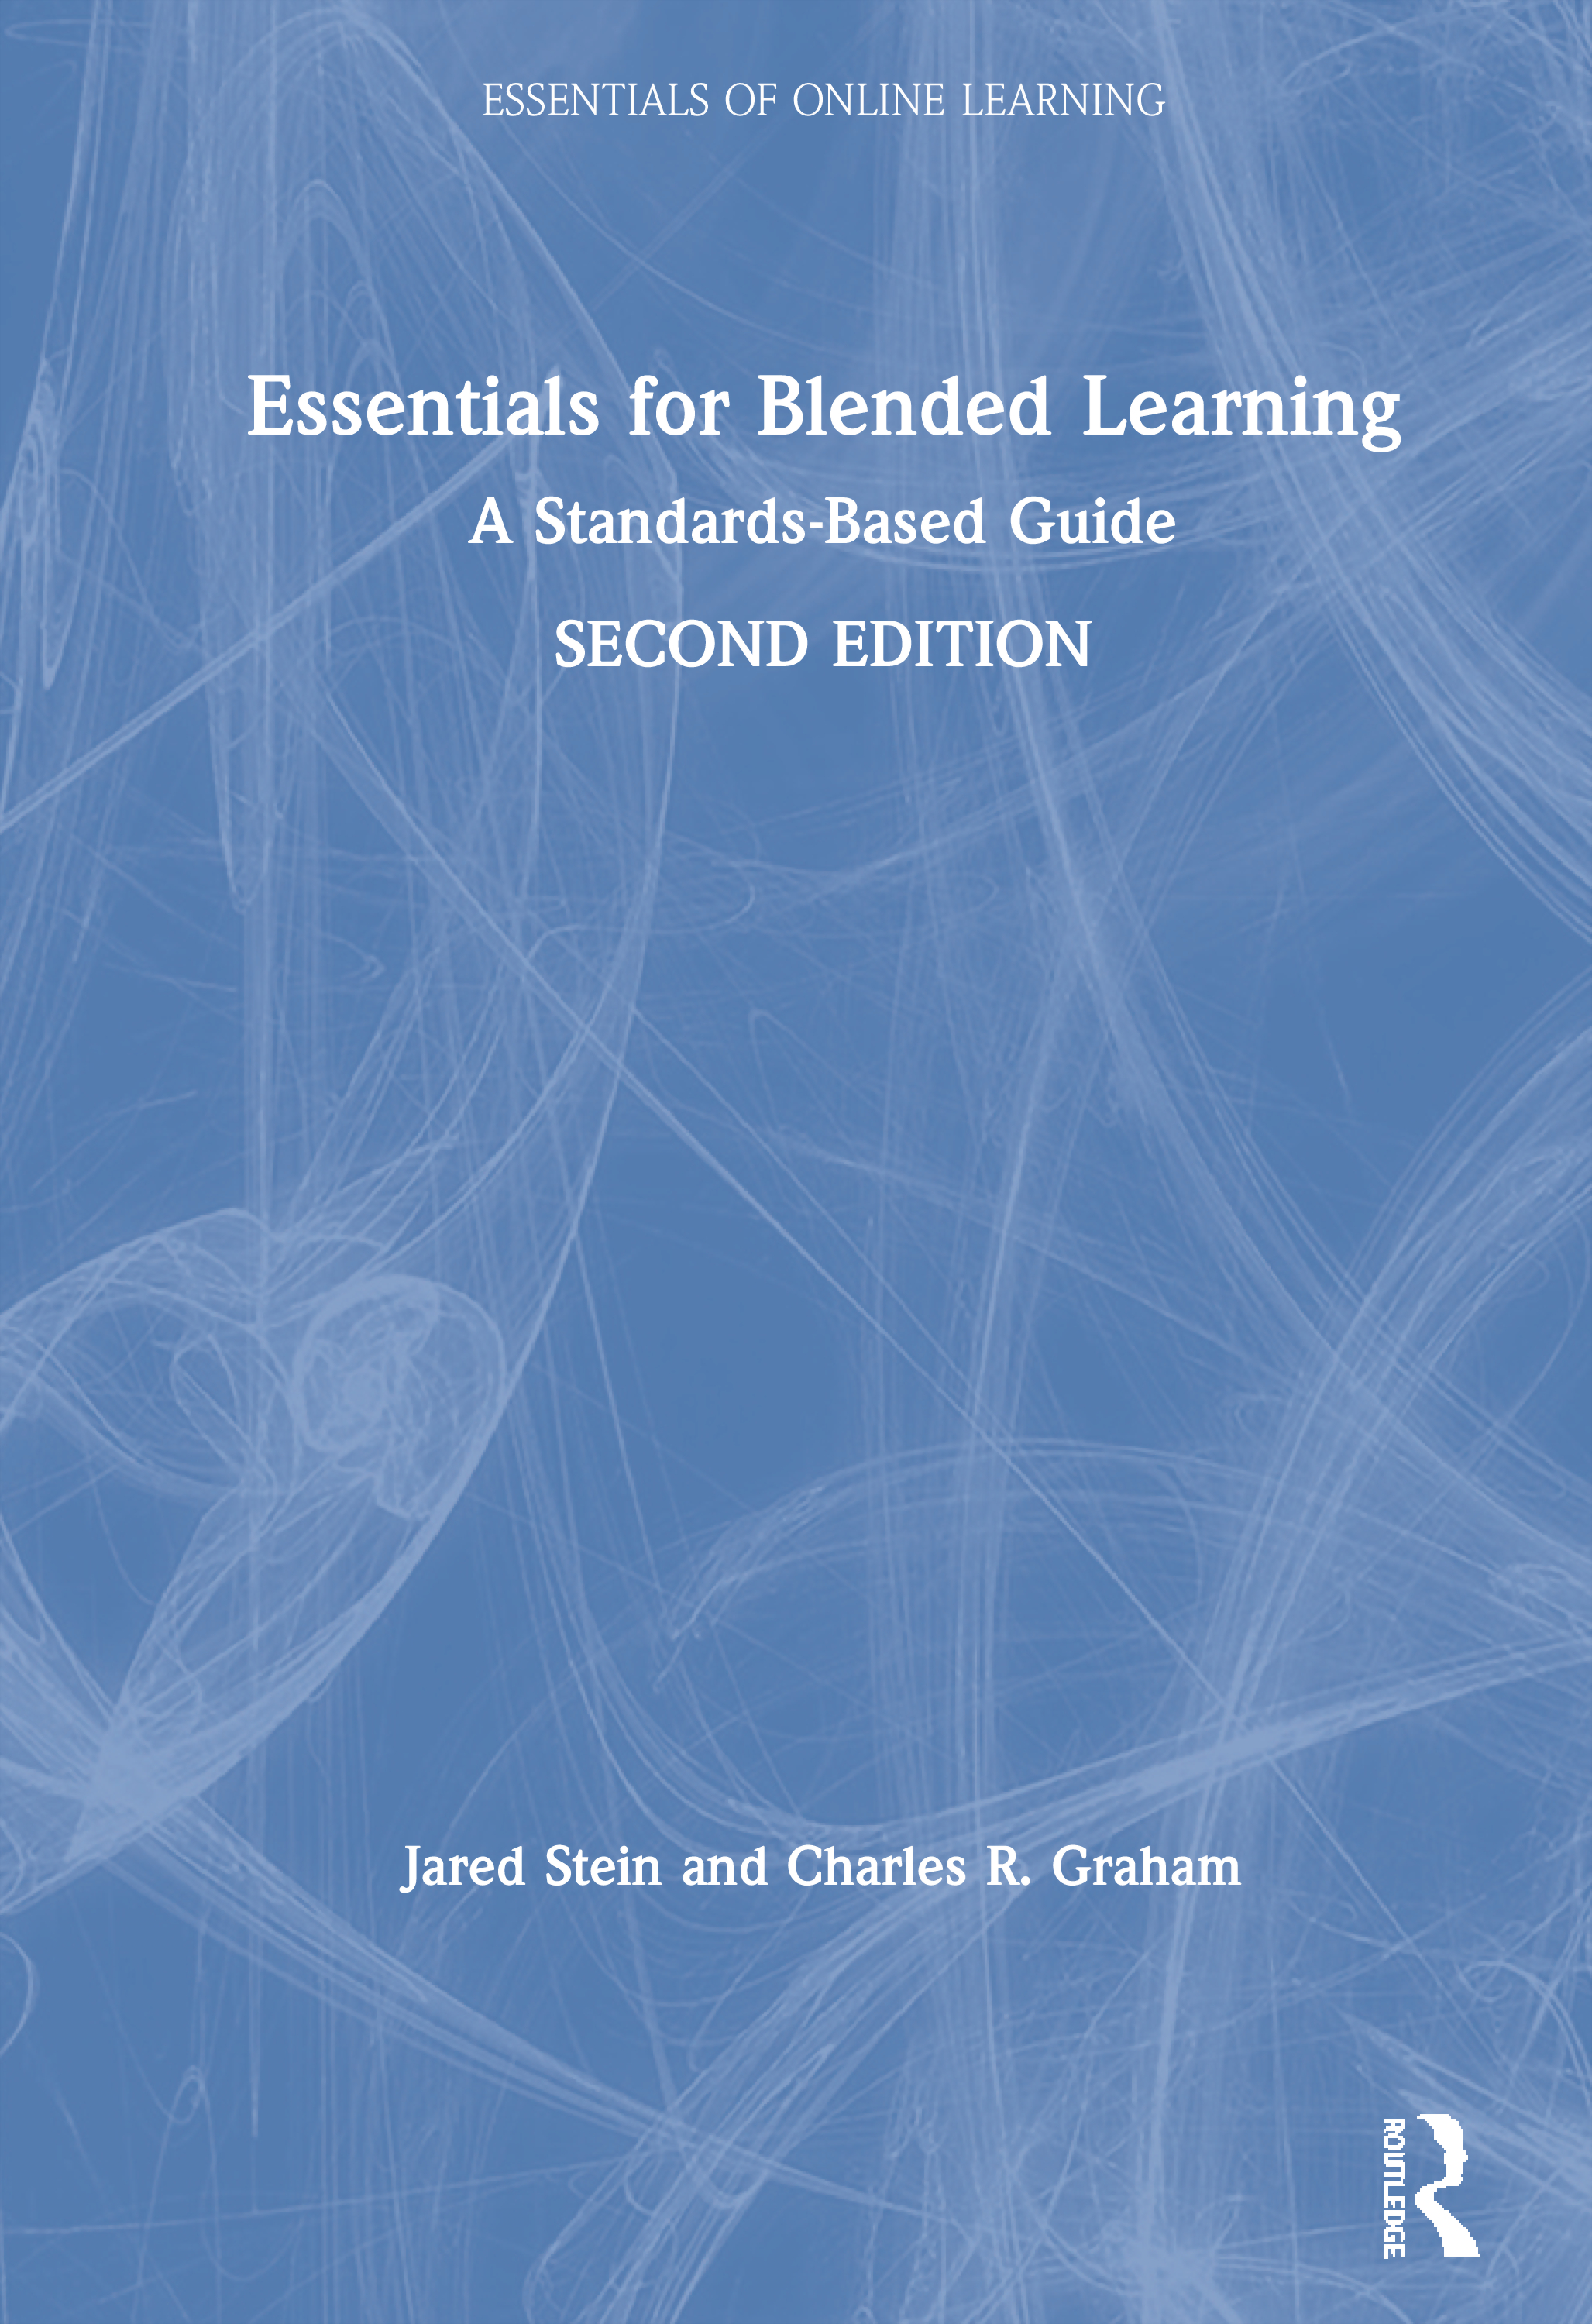 Essentials for Blended Learning, 2nd Edition: A Standards-Based Guide book cover